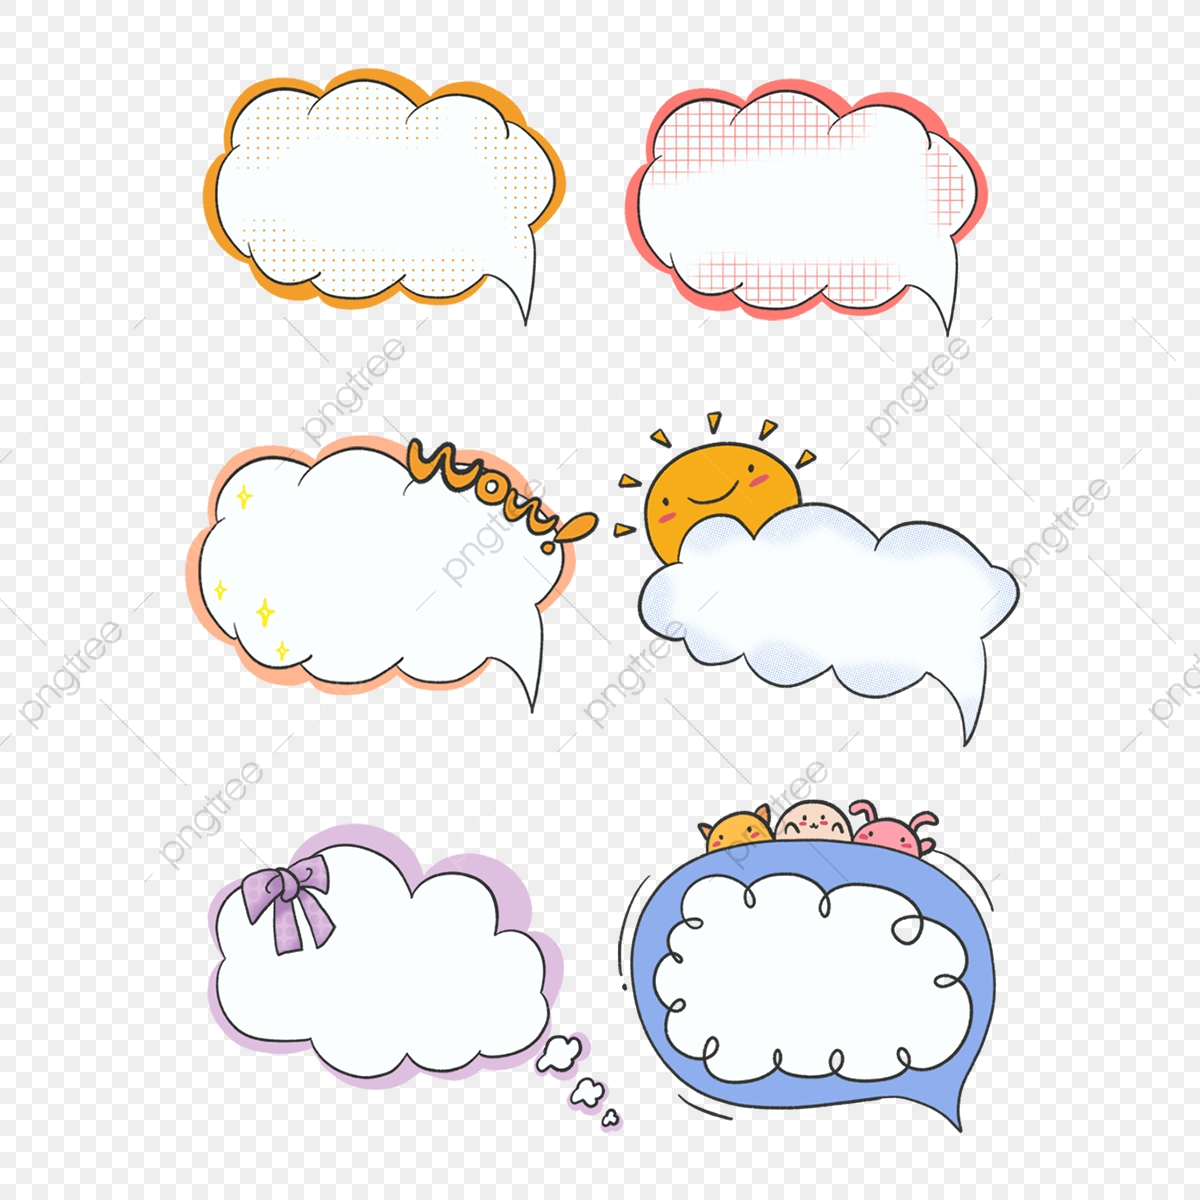 Free Cartoon Cloud, Download Free Clip Art, Free Clip Art on Clipart Library